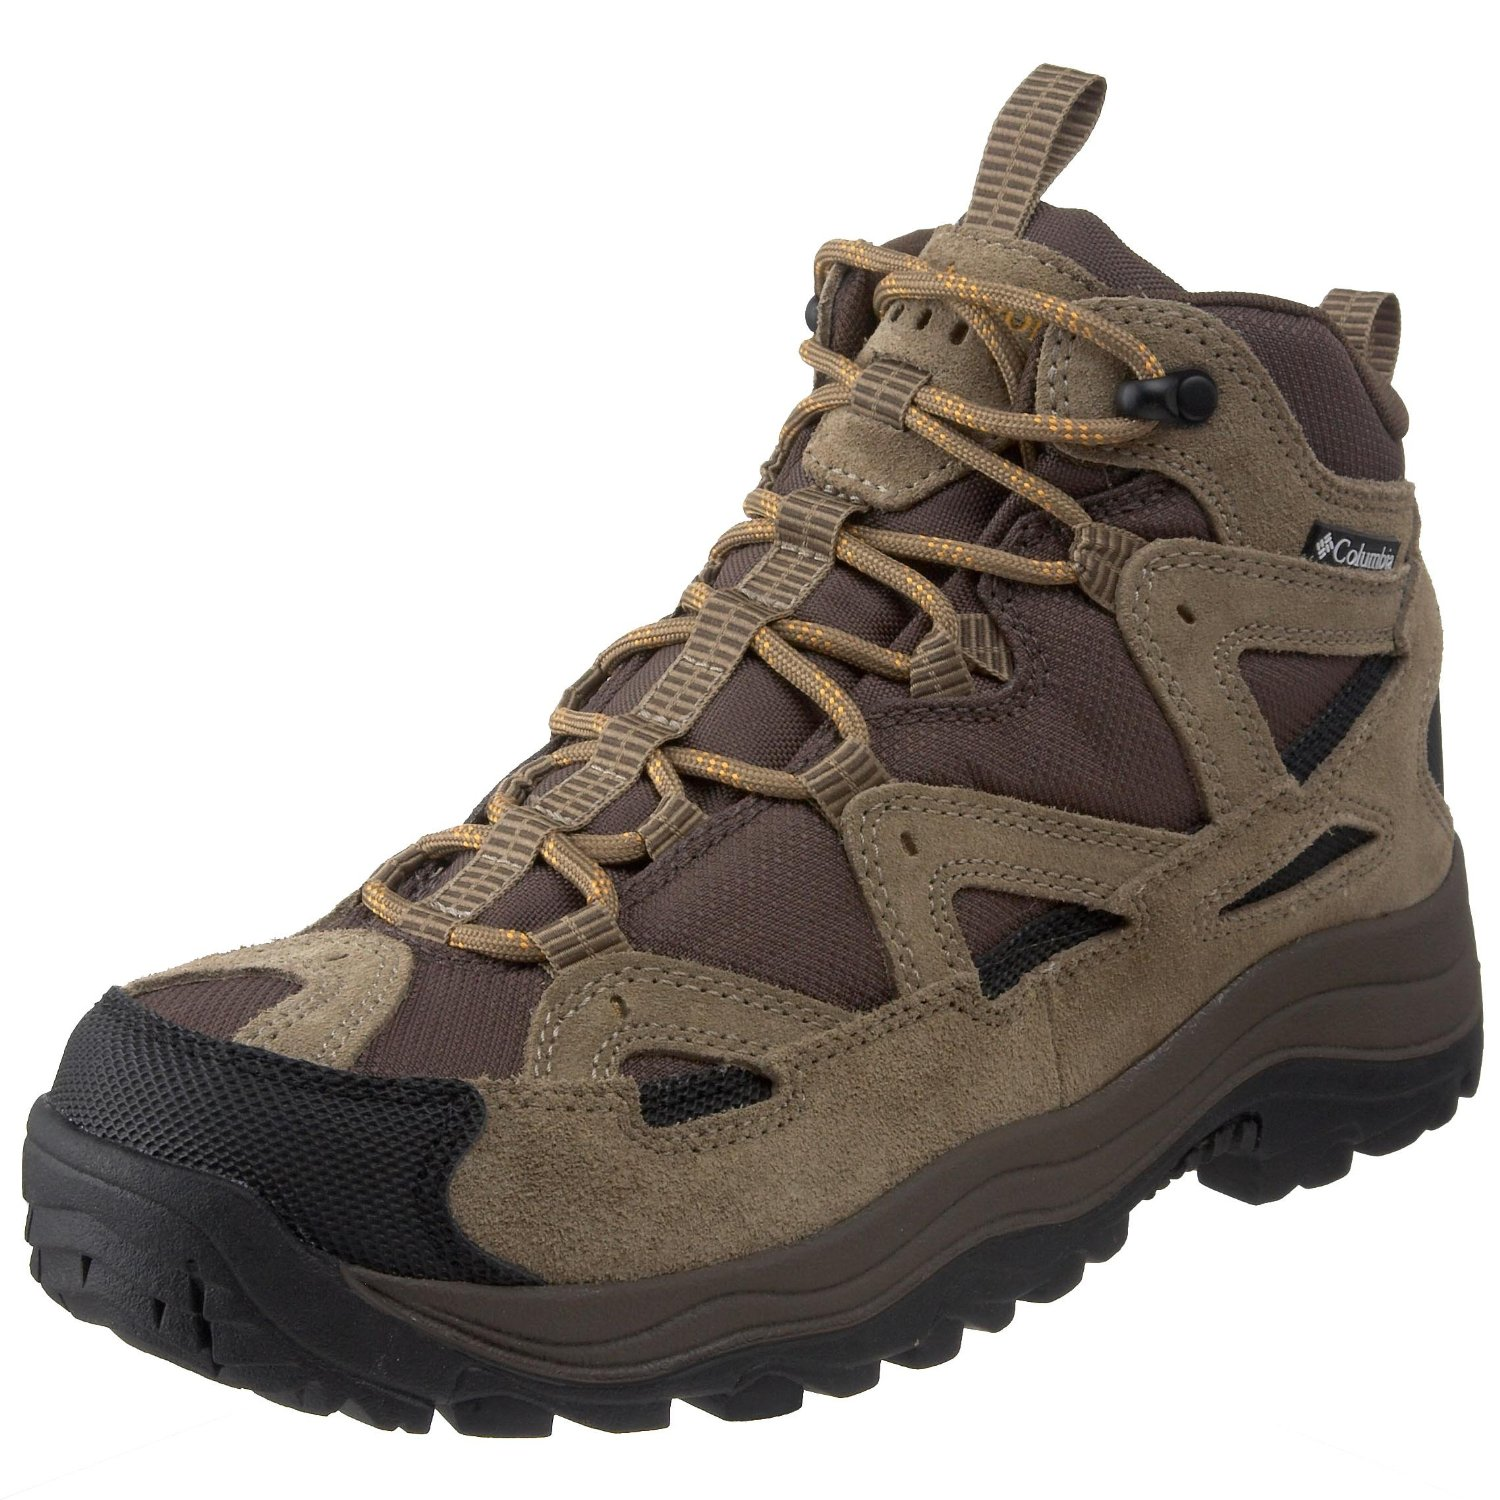 Mens Hiking Shoes And Boots